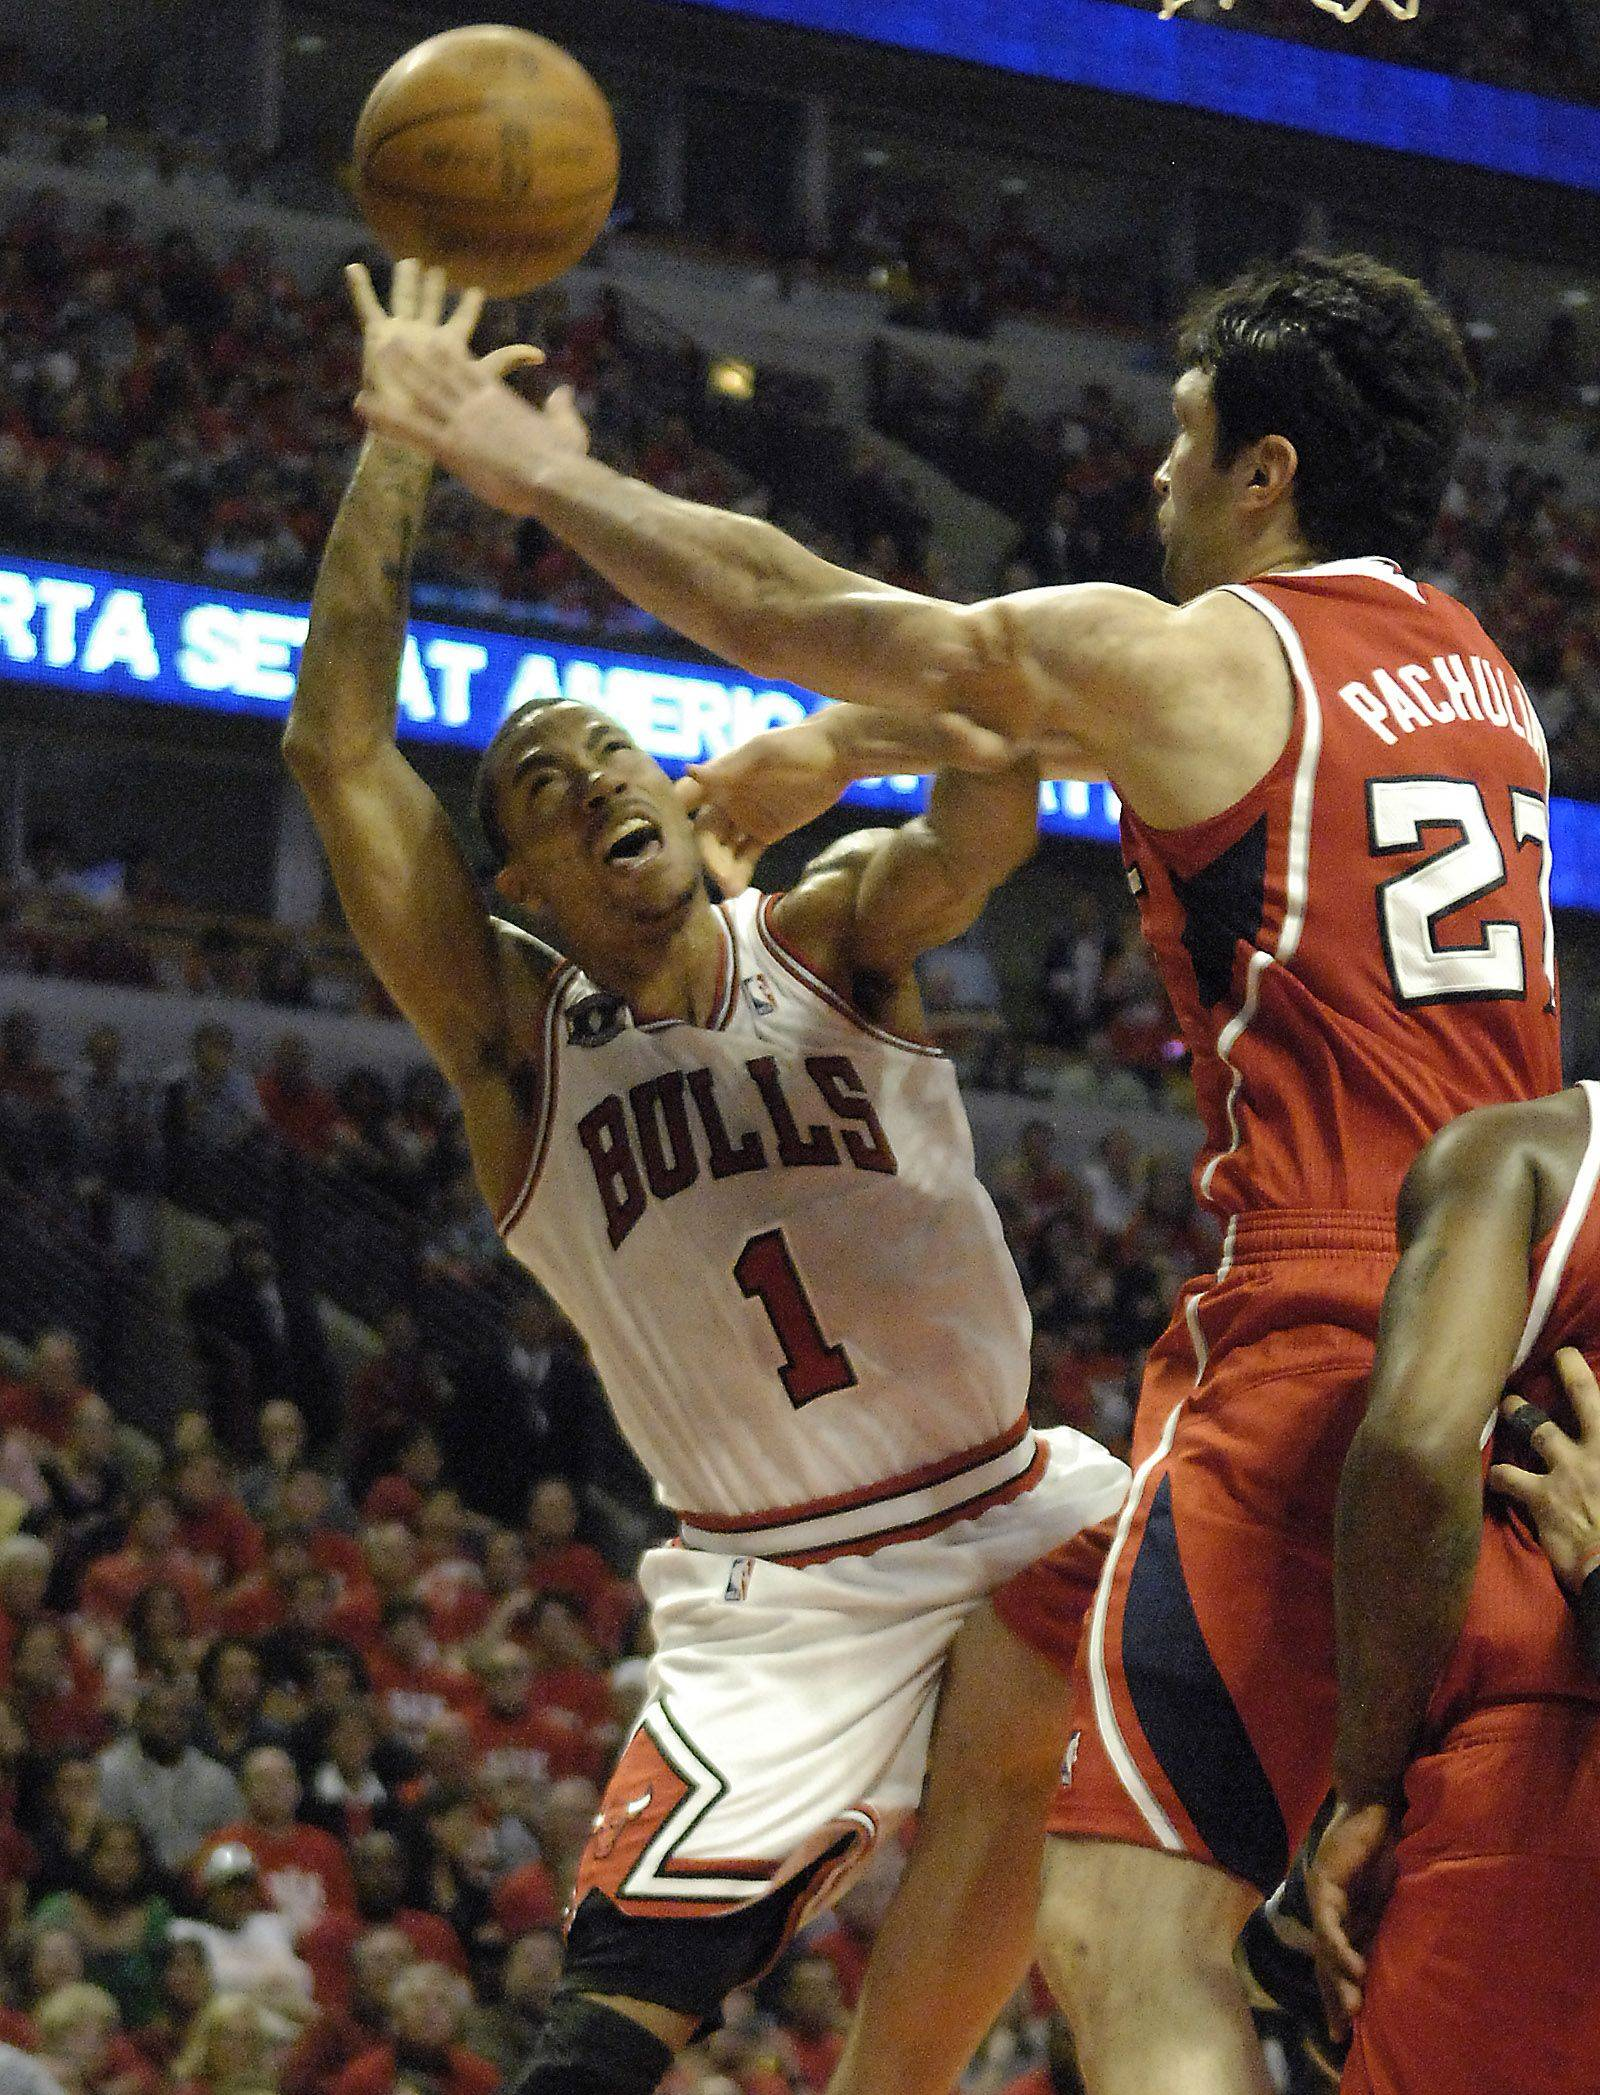 Chicago's Derrick Rose is fouled by Atlanta's Zaza Pachulia in game 5 Tuesday.